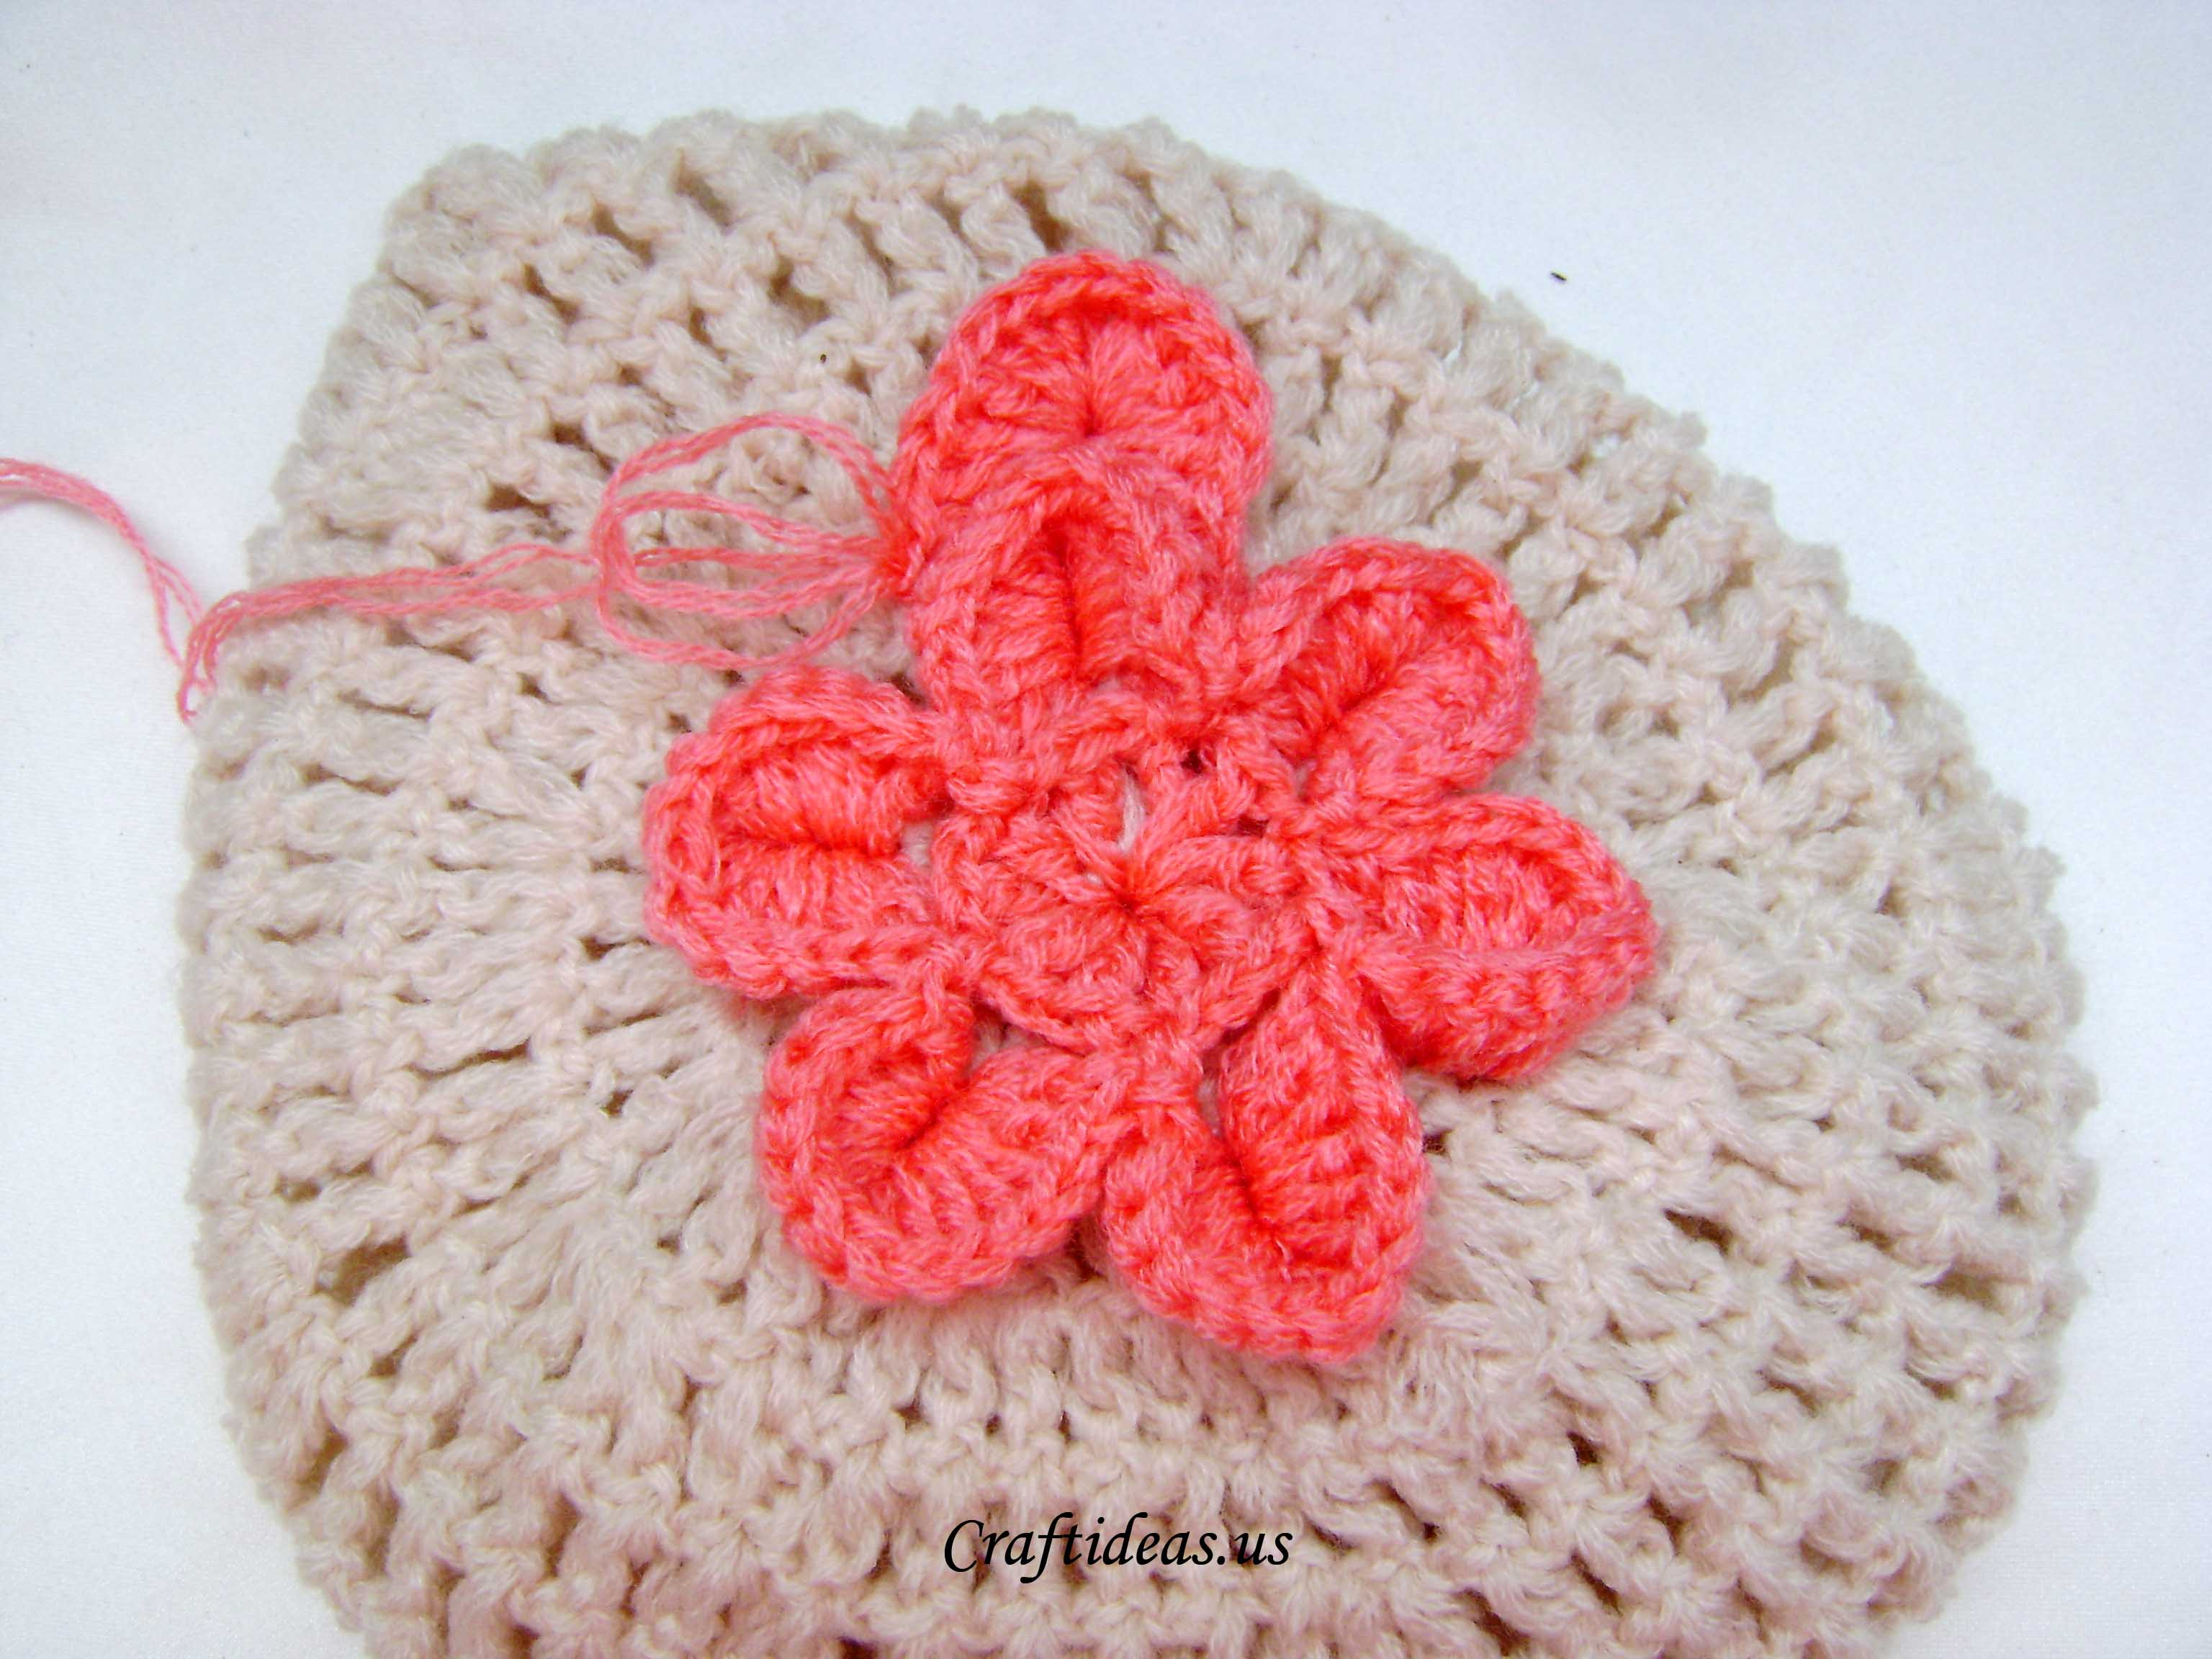 ... Crafts Ideas Crocheted Christmas Clock Christmas Tree Craft on